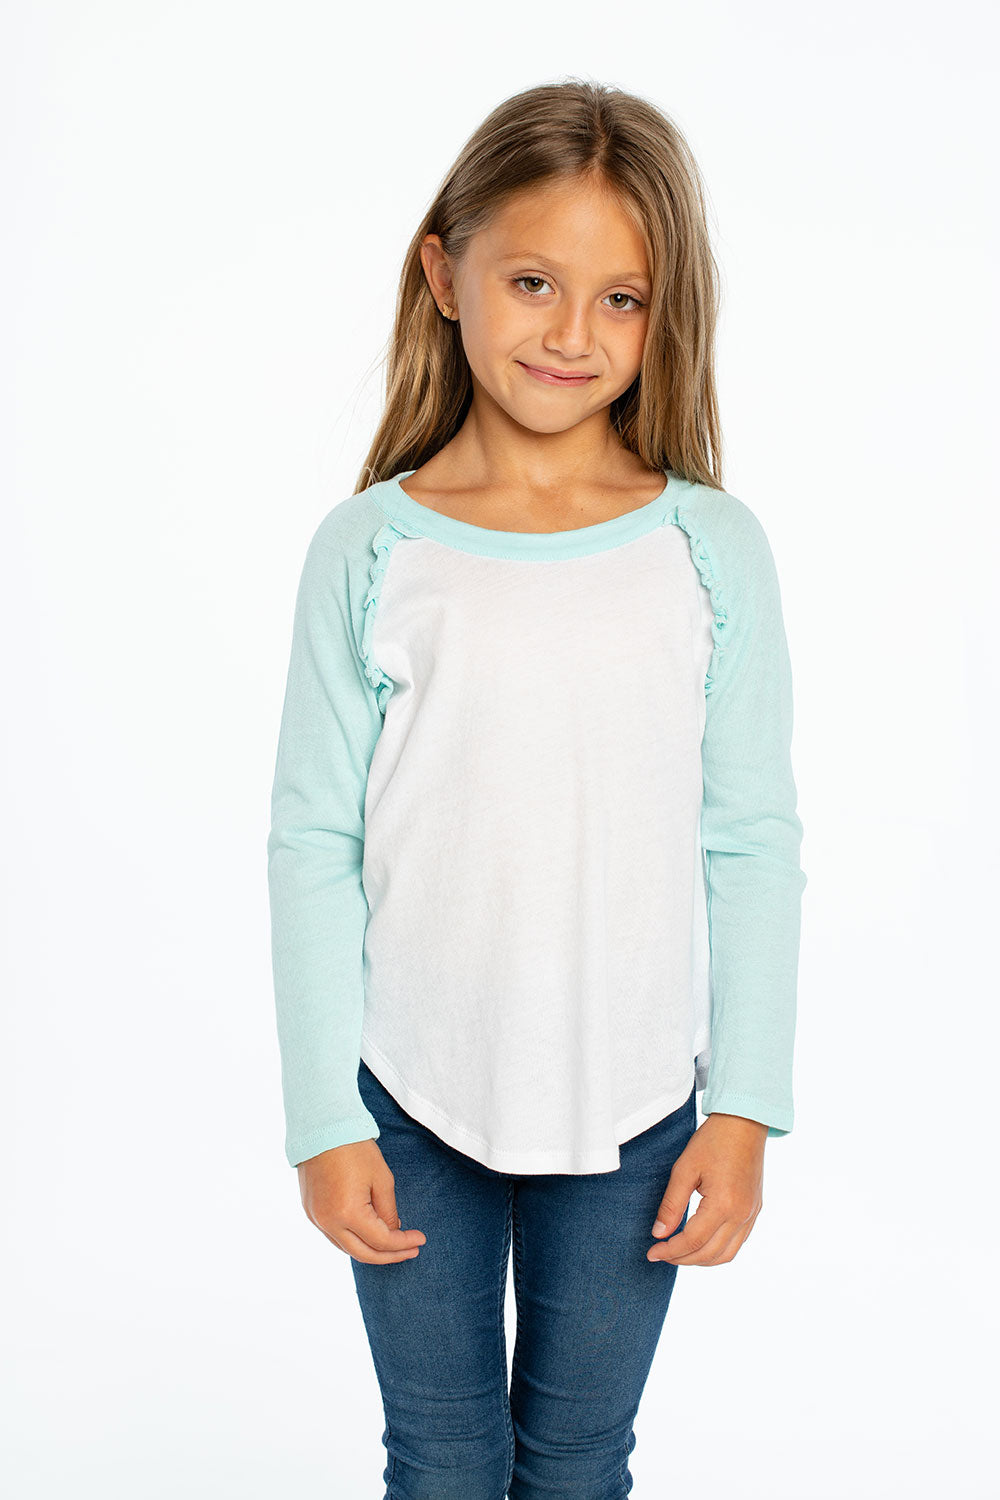 Gauzy Cotton L/S Ruffle Raglan Baseball Tee, GIRLS, chaserbrand.com,chaser clothing,chaser apparel,chaser los angeles